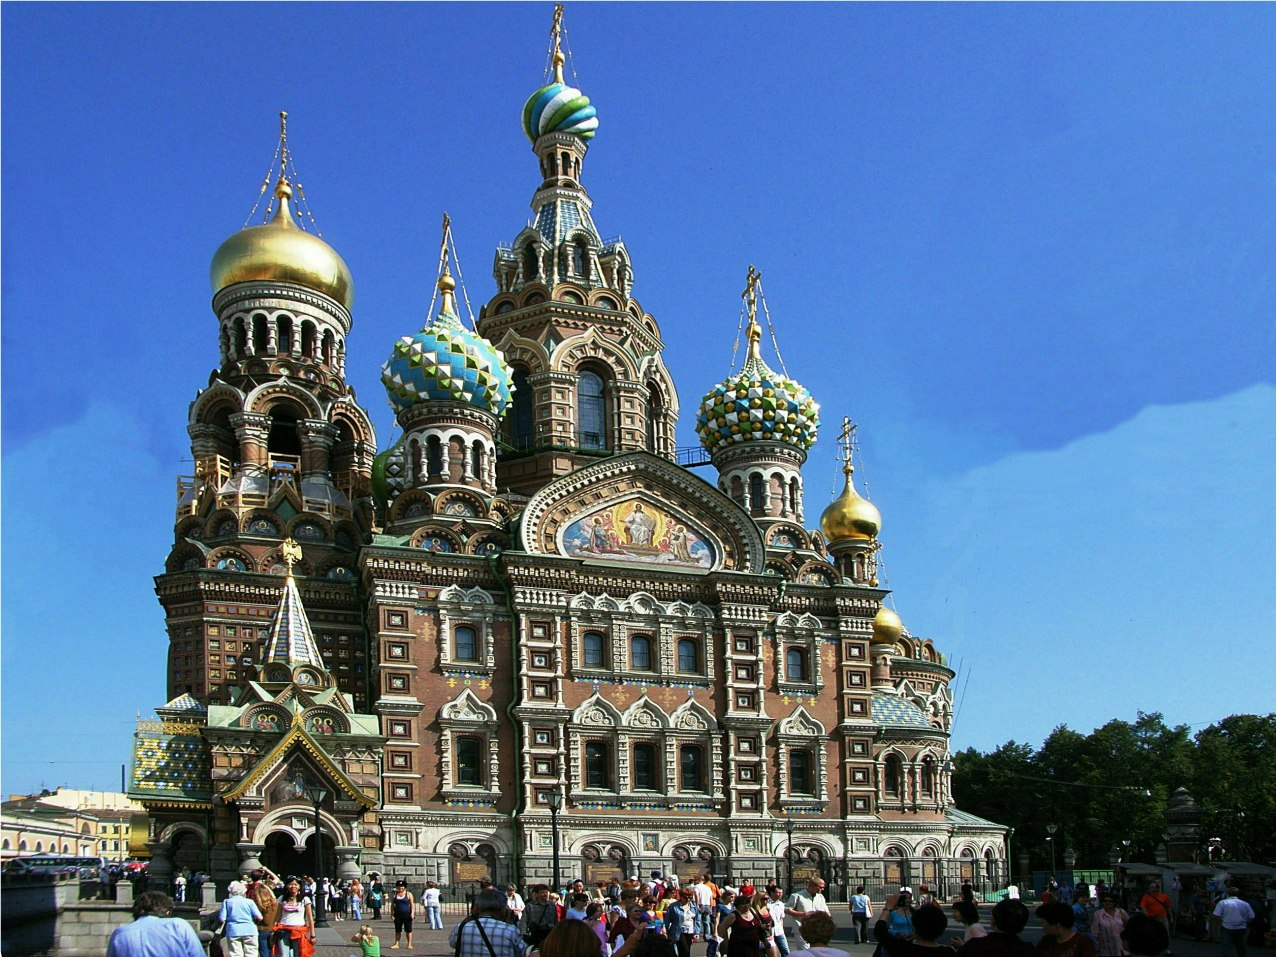 Architecture of St. Petersburg: description, attractions and interesting facts 44